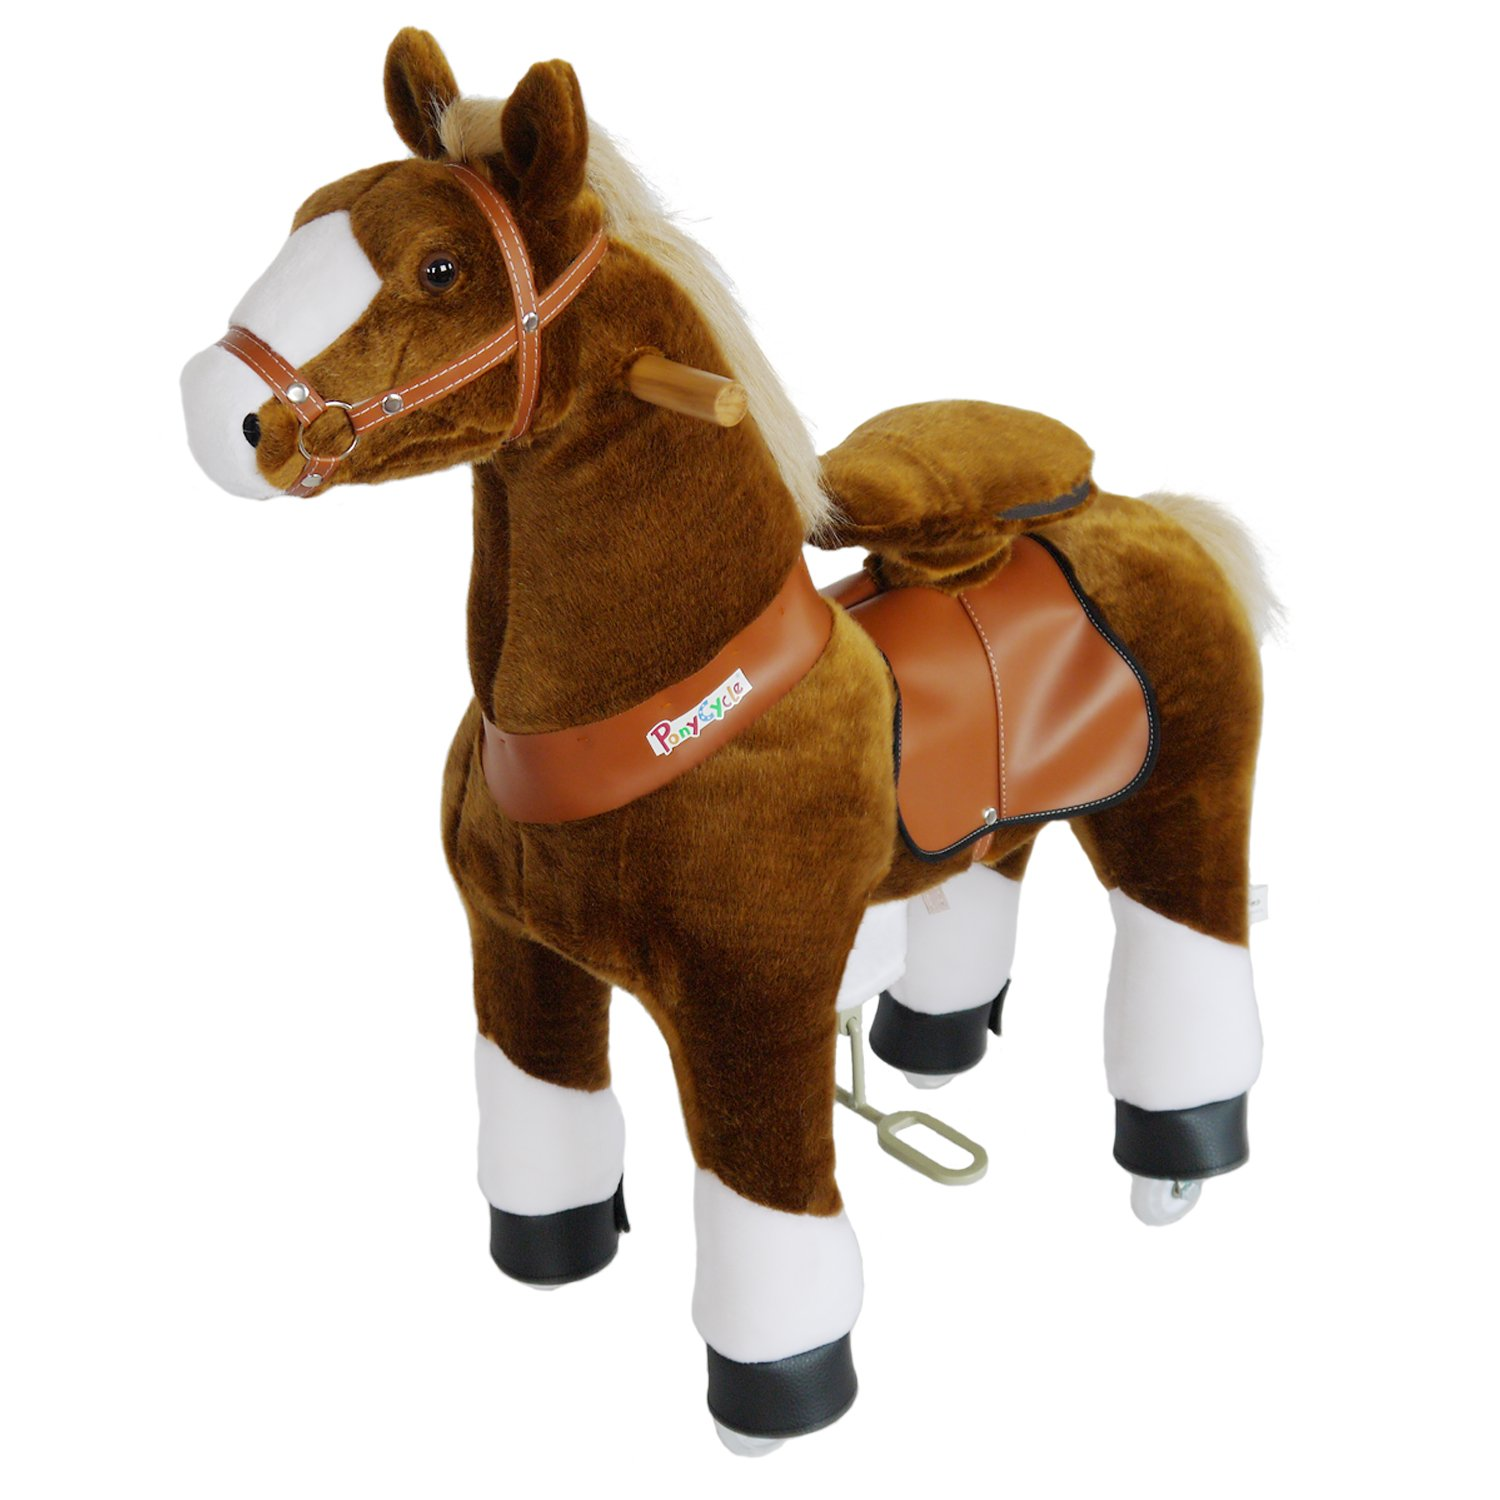 PonyCycle Official Ride-On Horse No Battery No Electricity Mechanical Pony Brown with White Hoof Giddy up Pony Plush Walking Animal for Age 4-9 Years Medium Size - N4151 by PonyCycle (Image #1)